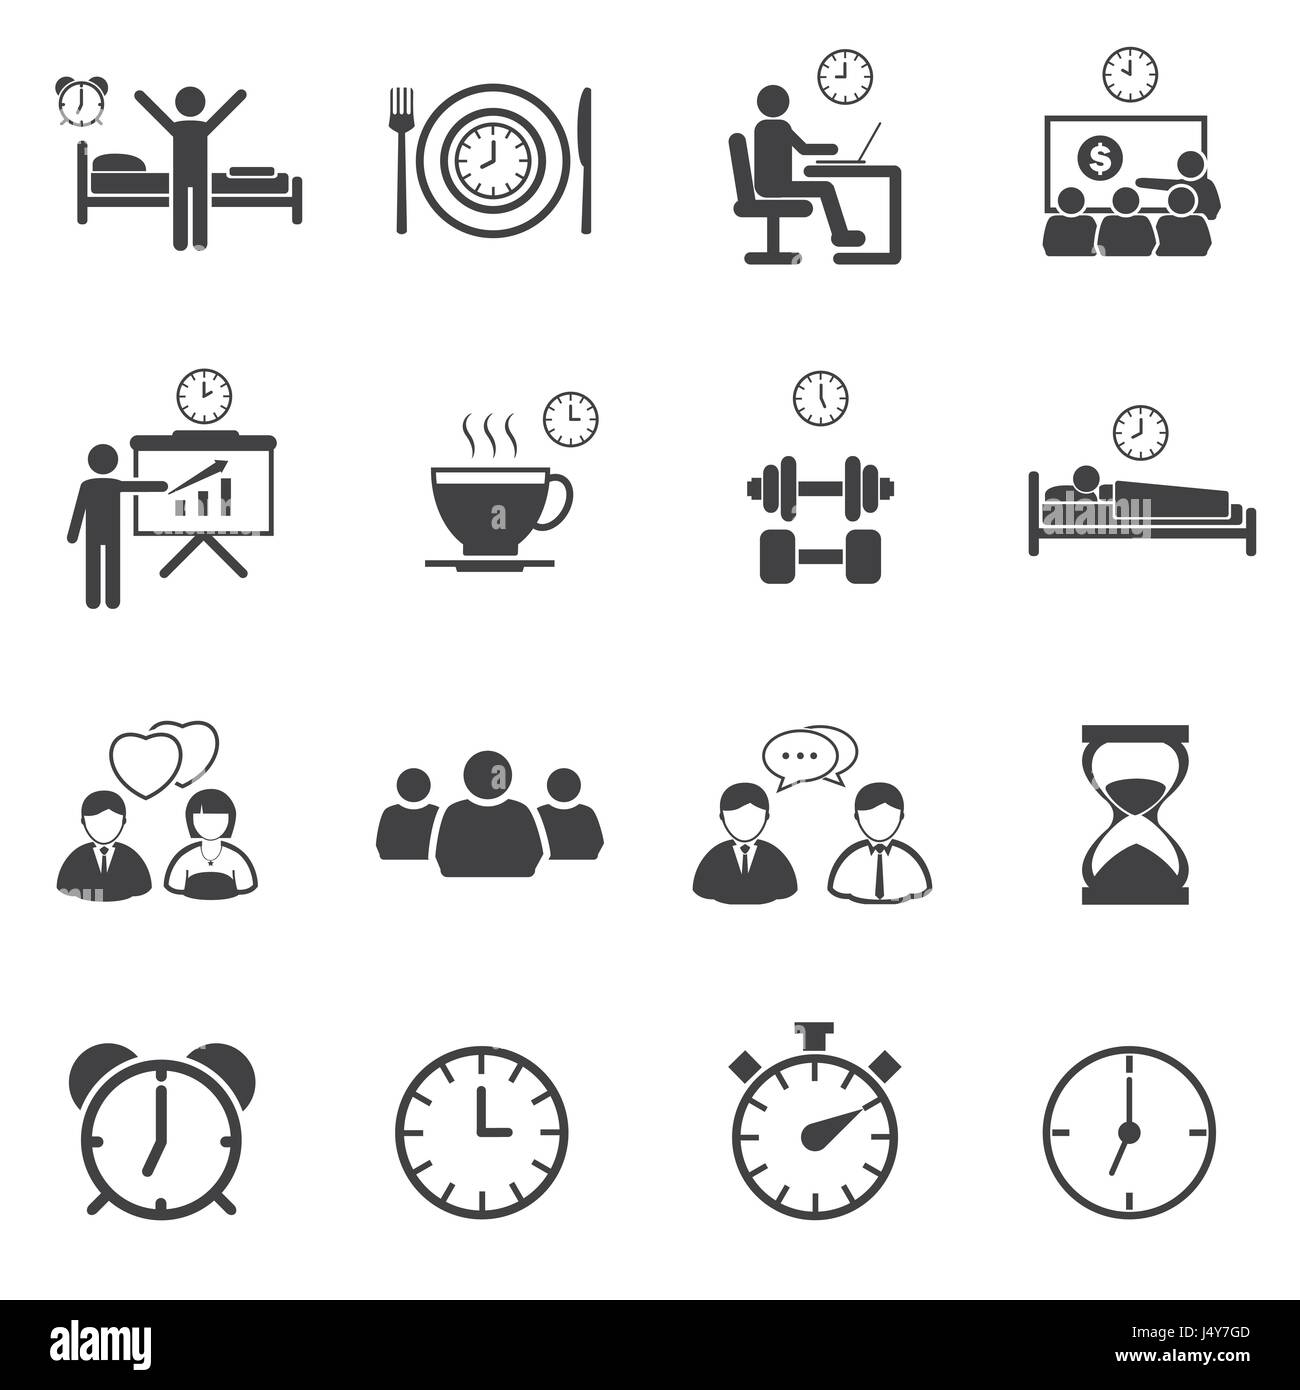 Business time and Daily routine icon set Stock Vector